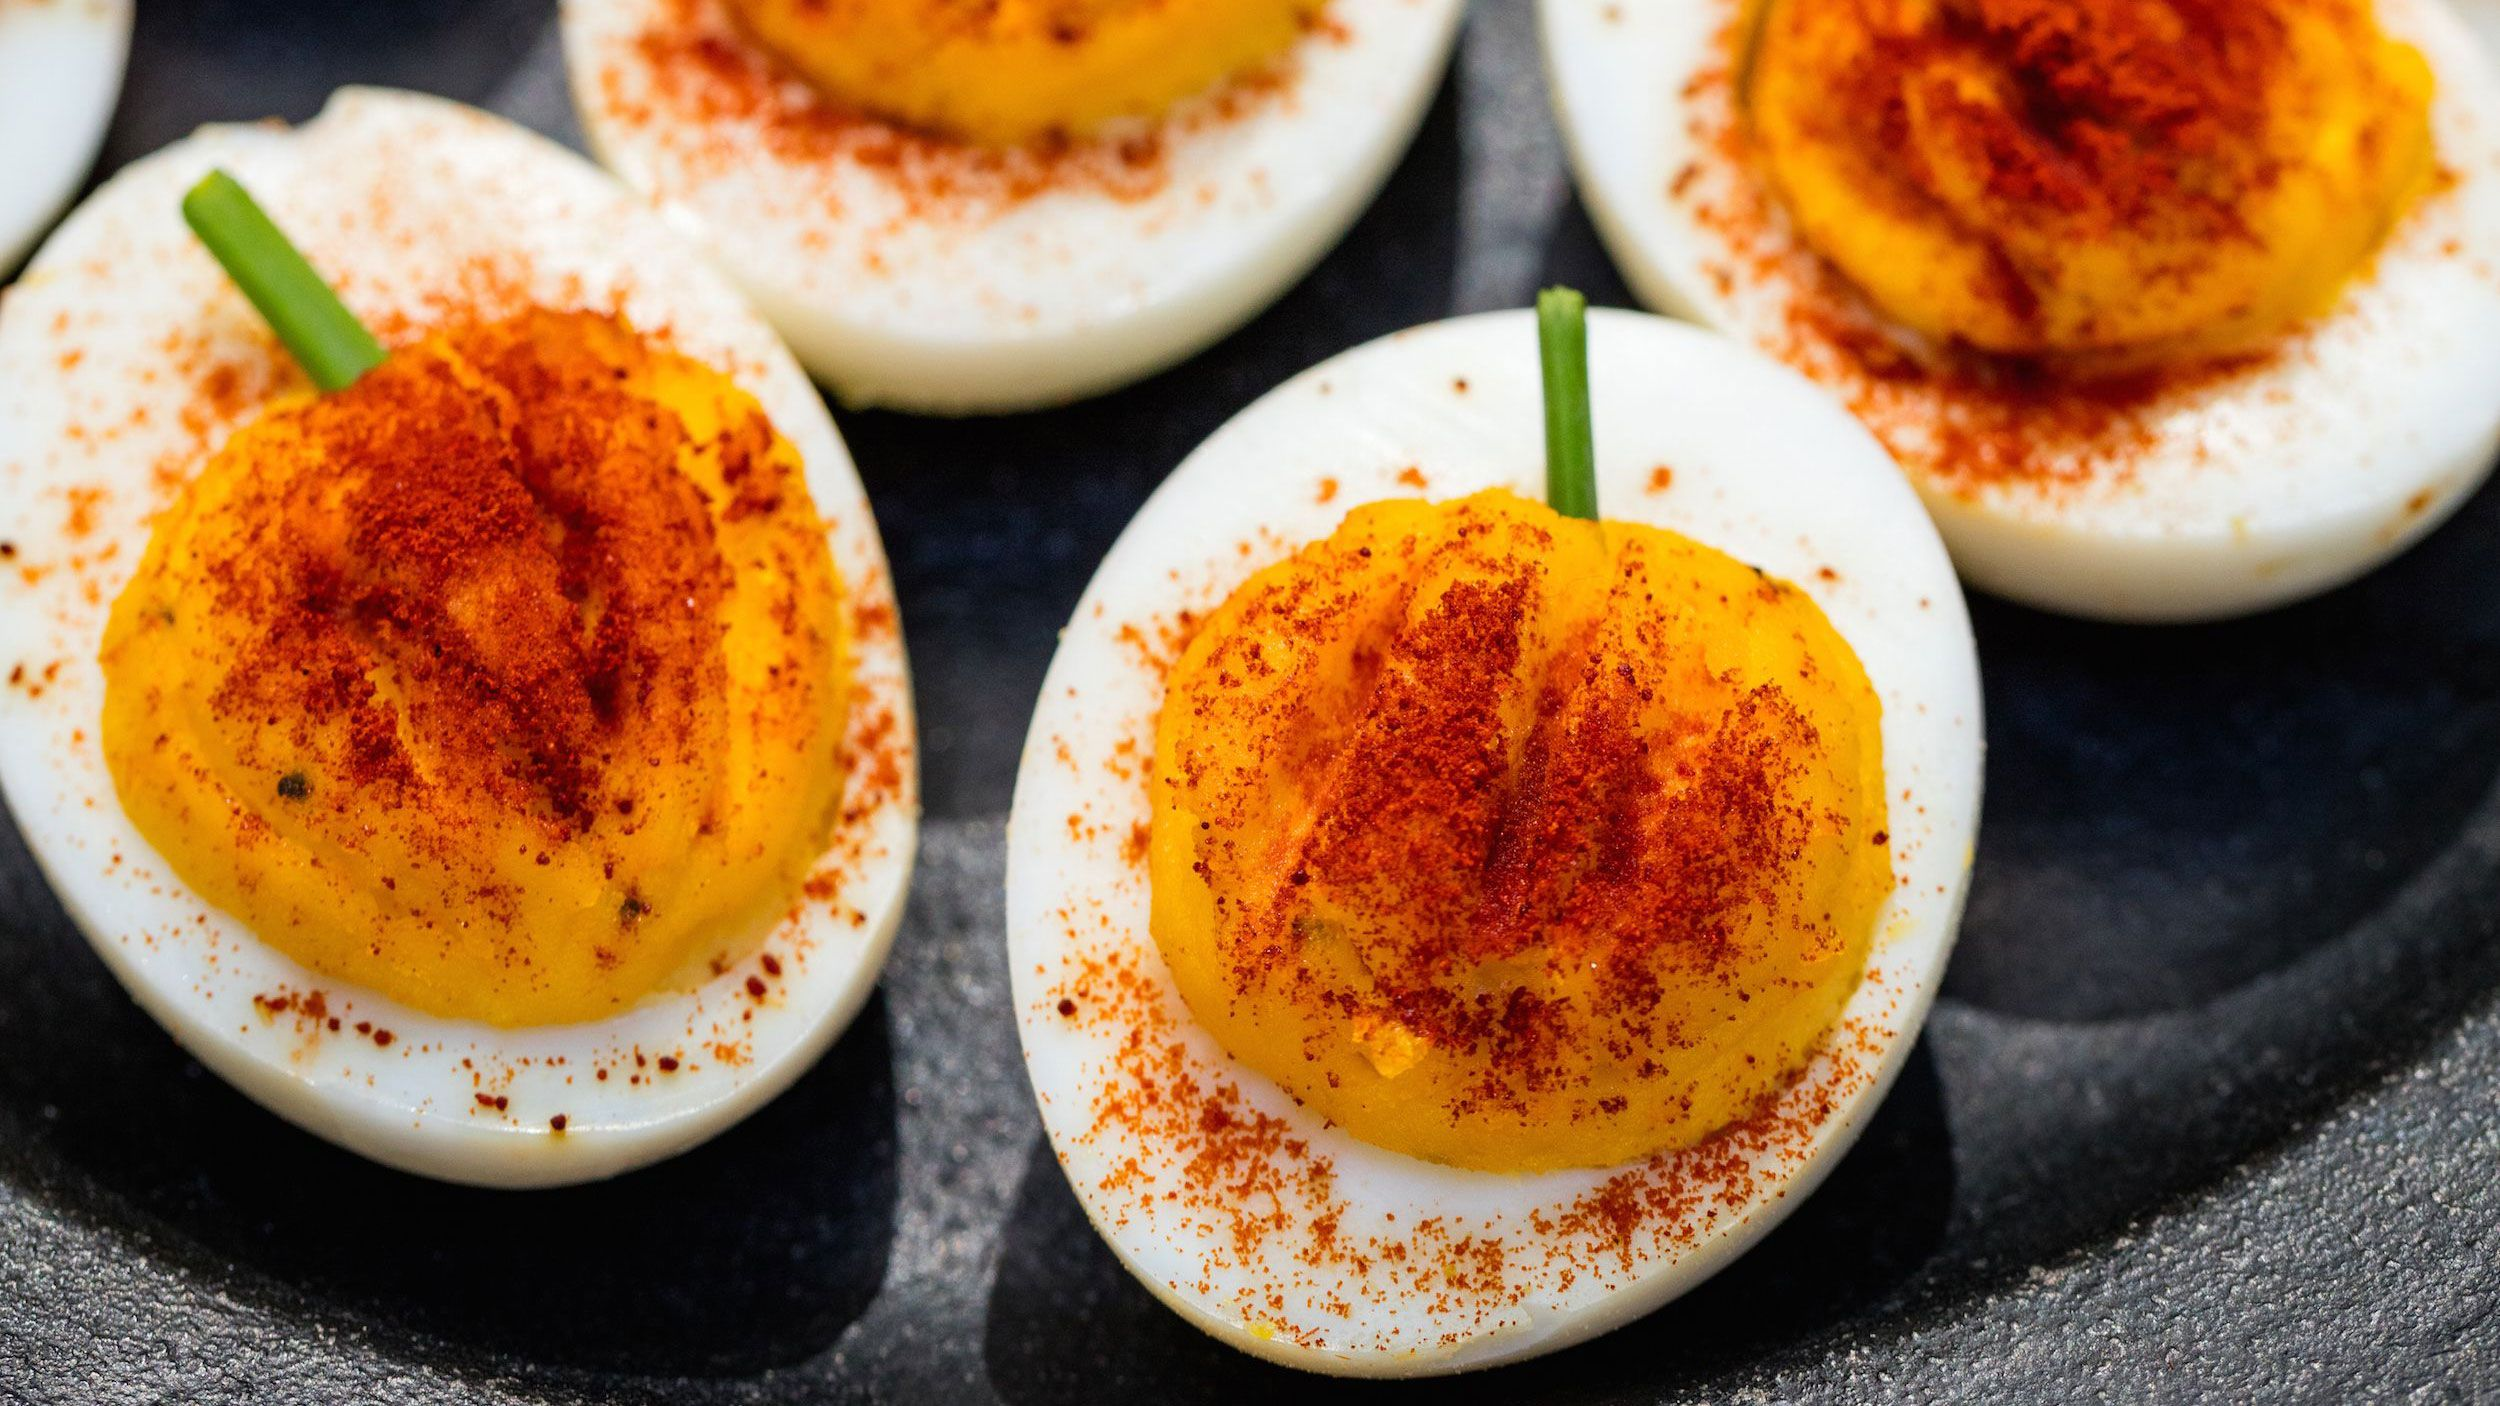 Best Pumpkin Deviled Eggs How To Make Pumpkin Deviled Eggs Delish Com